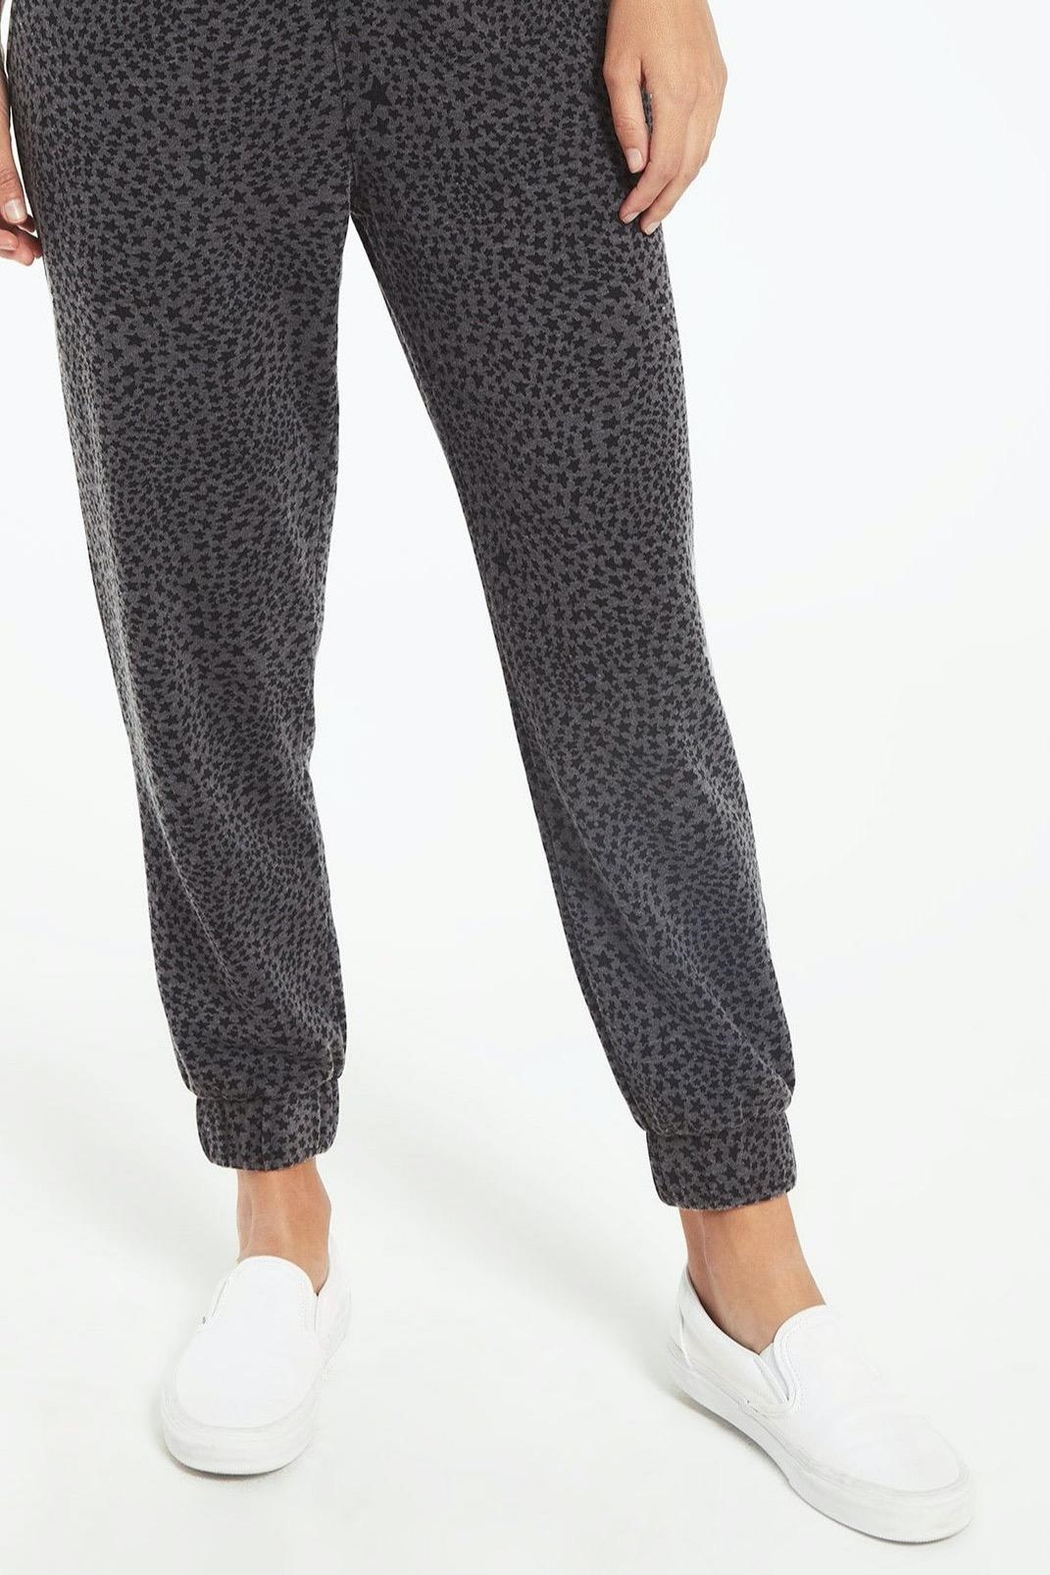 z supply Cadence Stardust Jogger-Charcoal - Main Image